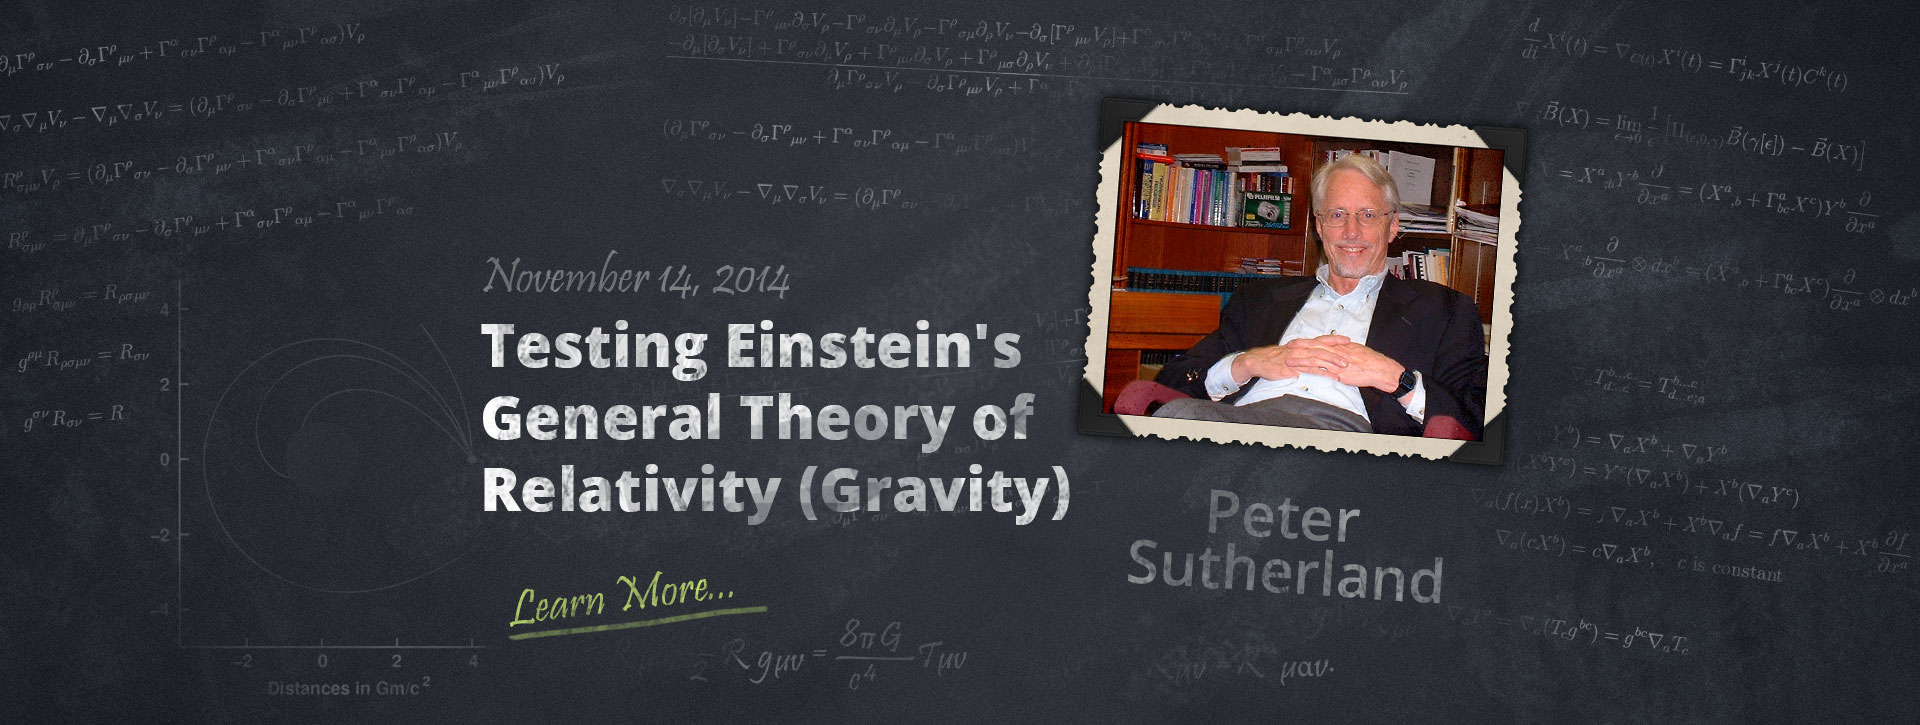 Testing Einstein's General Theory of Relativity (Gravity) with Peter Sutherland.